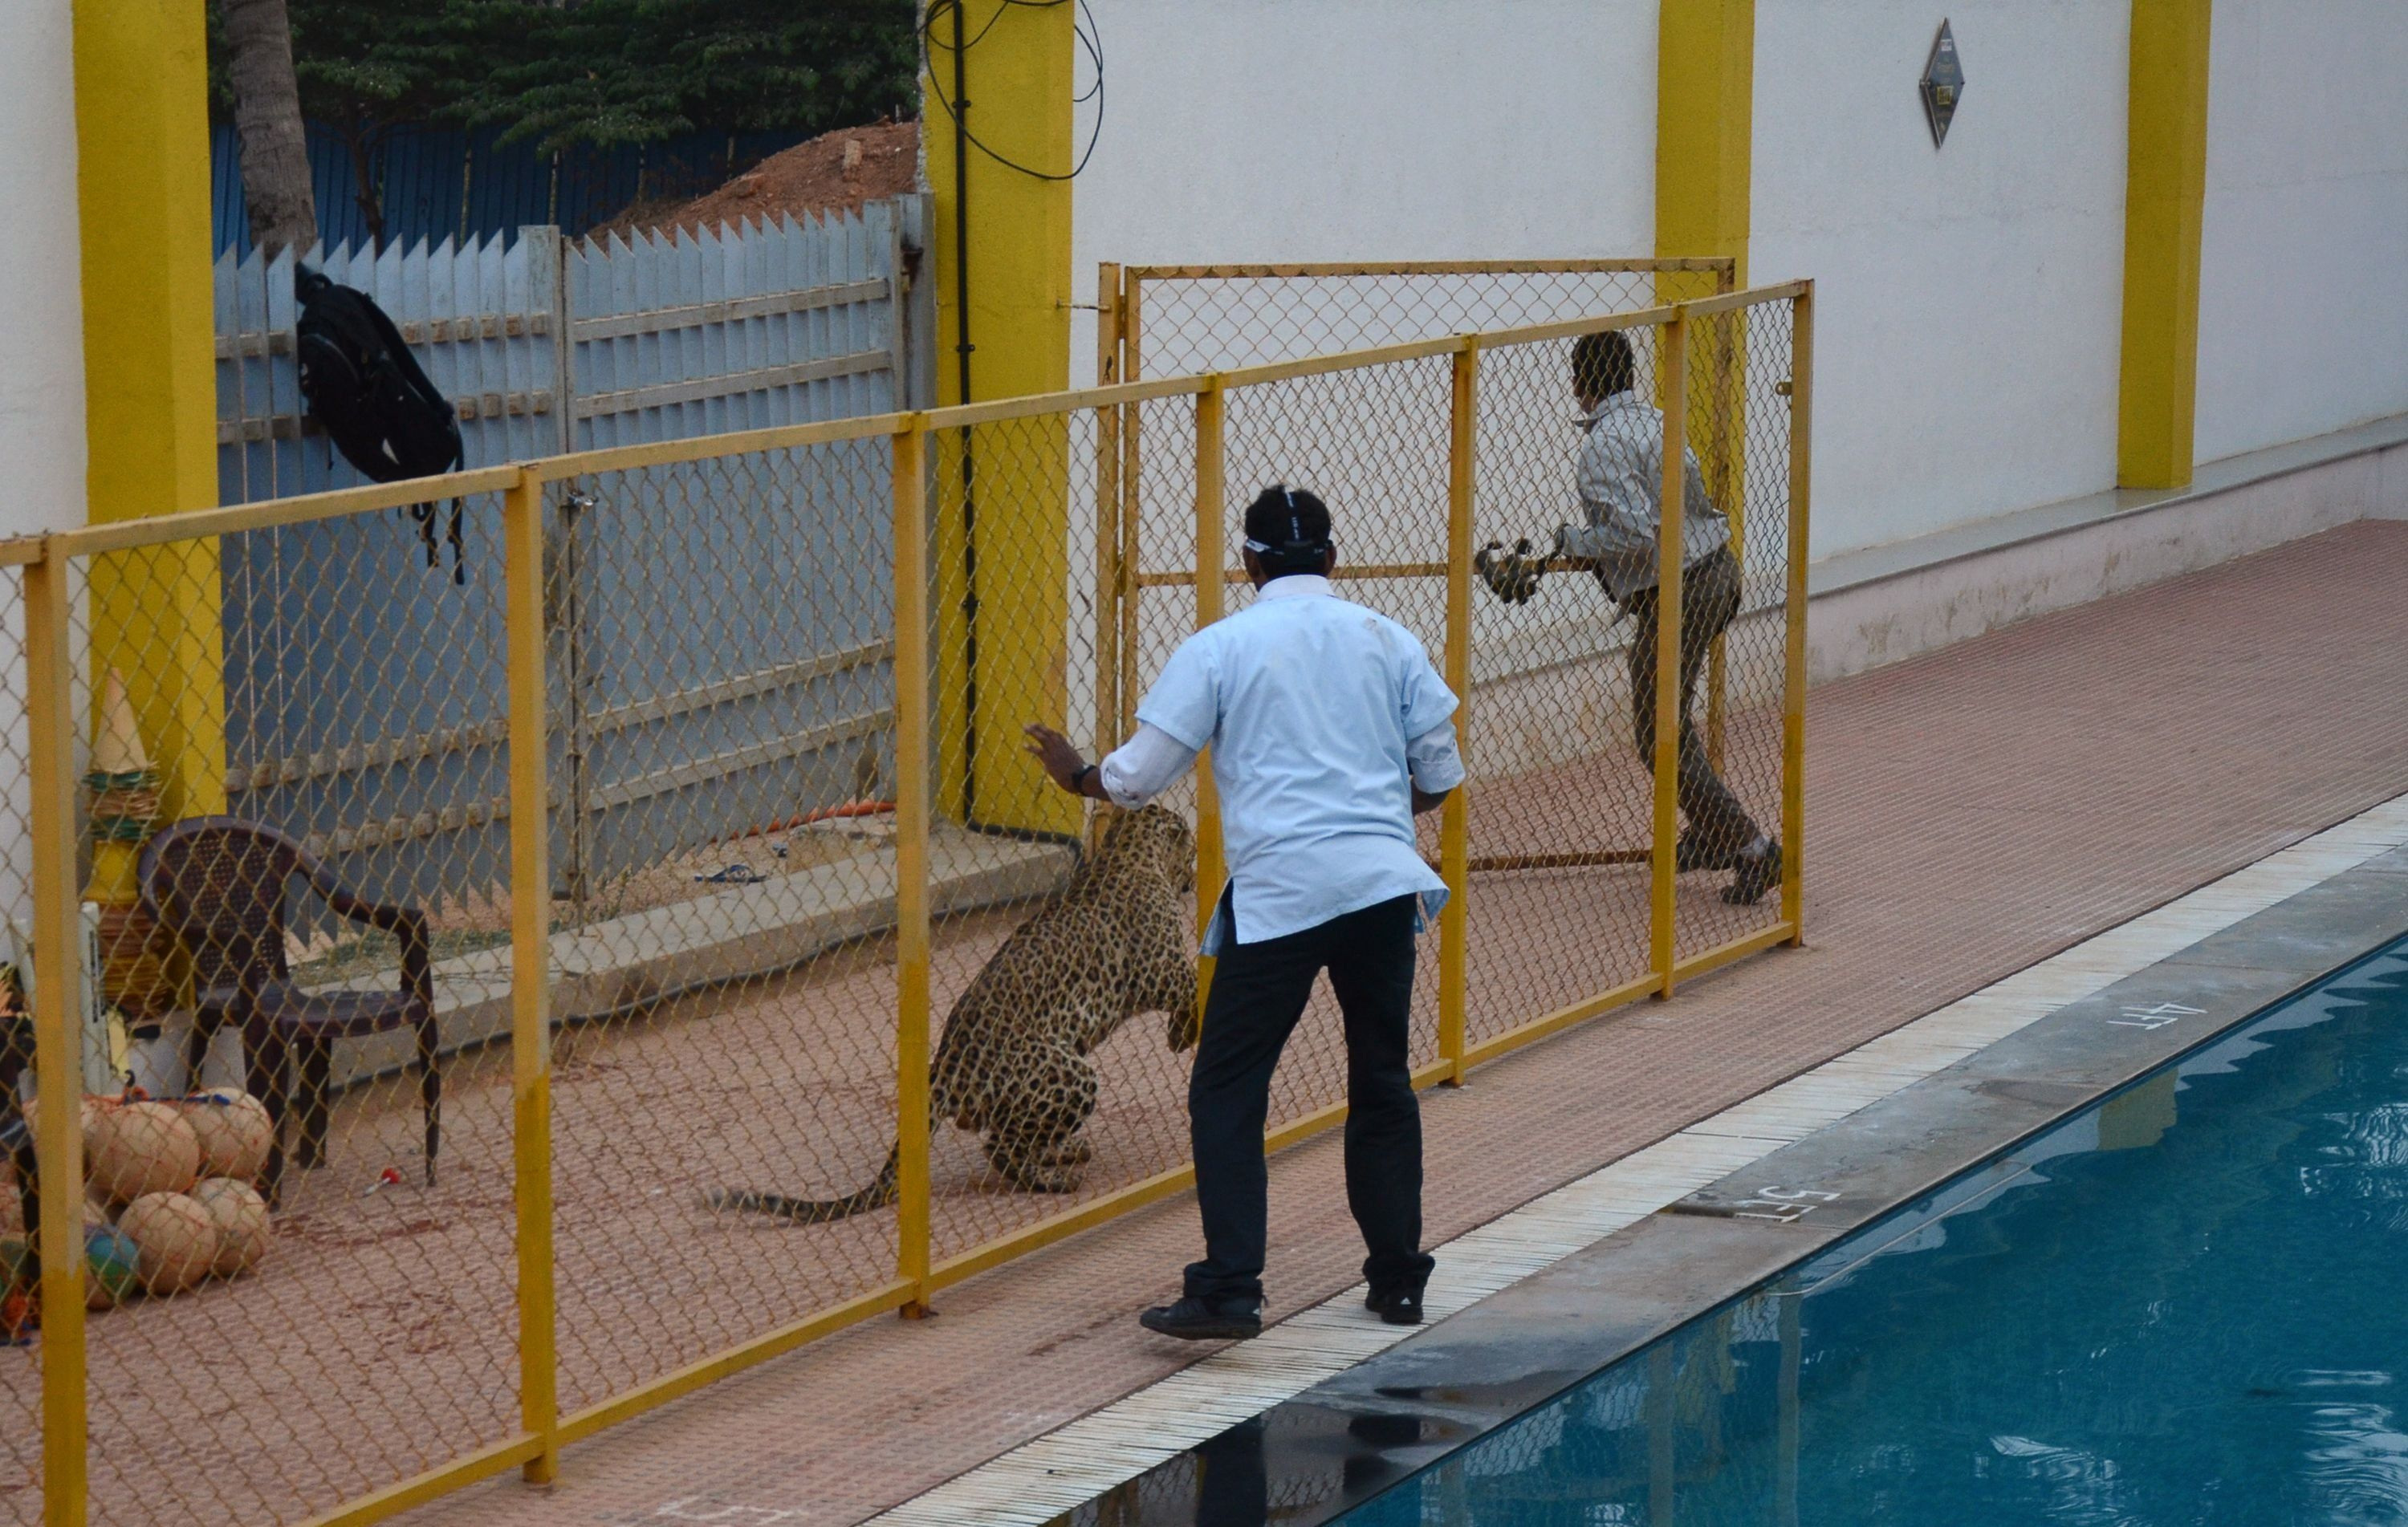 Gubbi, right, appears to runfrom the leopard after it entereda high school on Feb. 7, 2015.